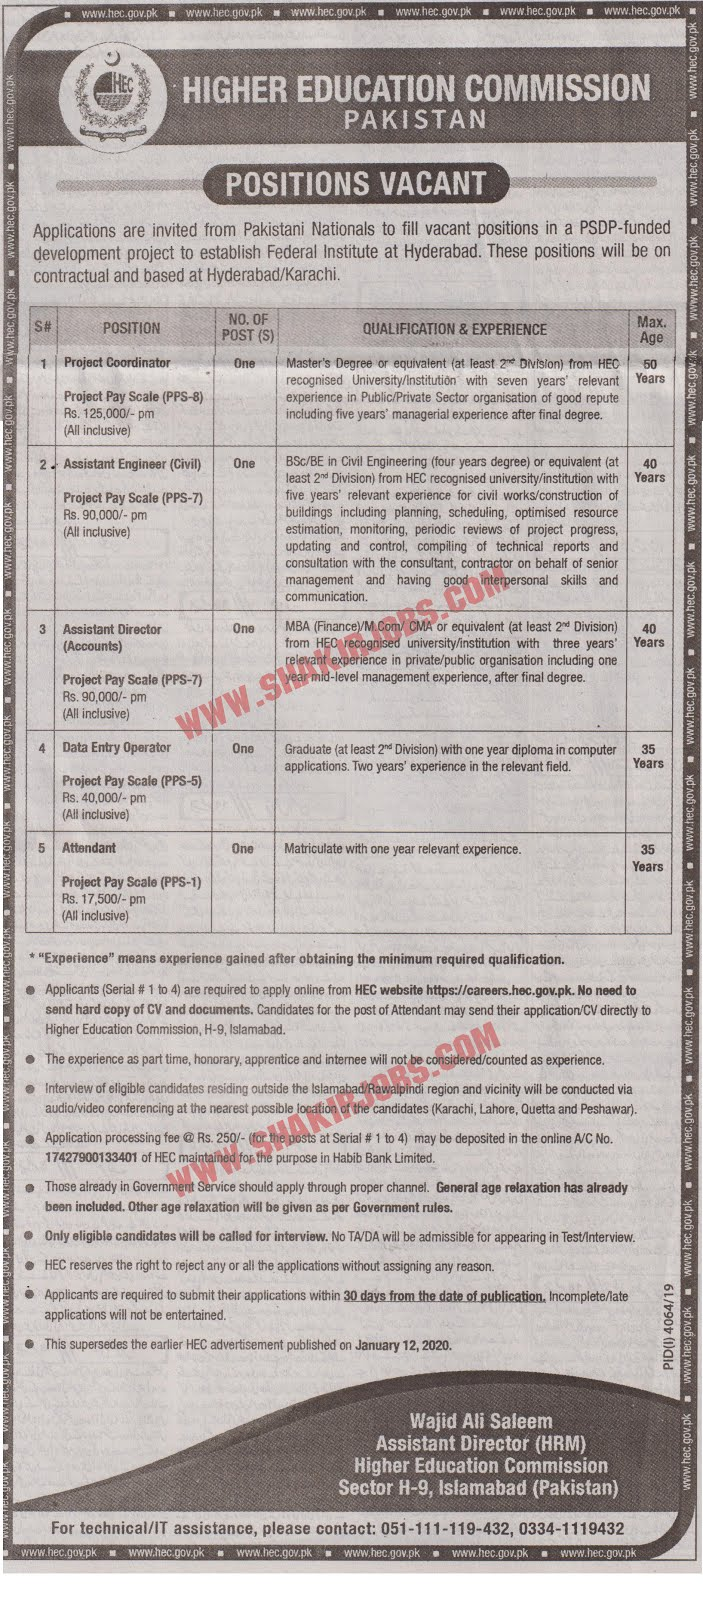 Higher Education Commission (HEC) Jobs 2020 Apply Online,higher education commission jobs 2020,higher education commission pakistan hec jobs 2019,higher education commission internship,higher education commission internship 2019,higher education commission,hec jobs 2020,higher education commission (hec) internship program 2019,higher education commission jobs,higher education commission pakistan,hec jobs 2020 higher education commission apply onlines